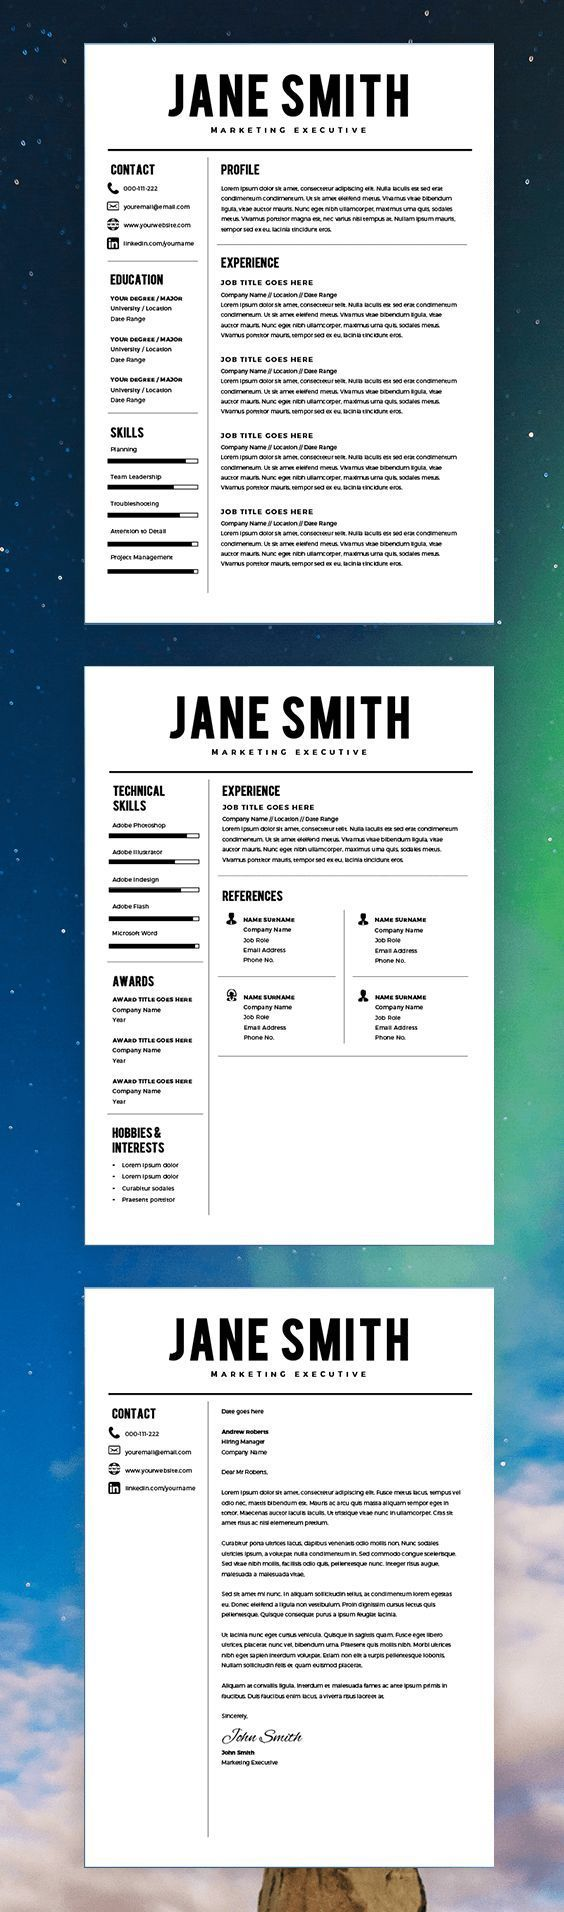 Best resume template cv template cover letter ms word on mac best resume template cv template cover letter ms word on mac pc professional design best resume templates instant download yelopaper Image collections